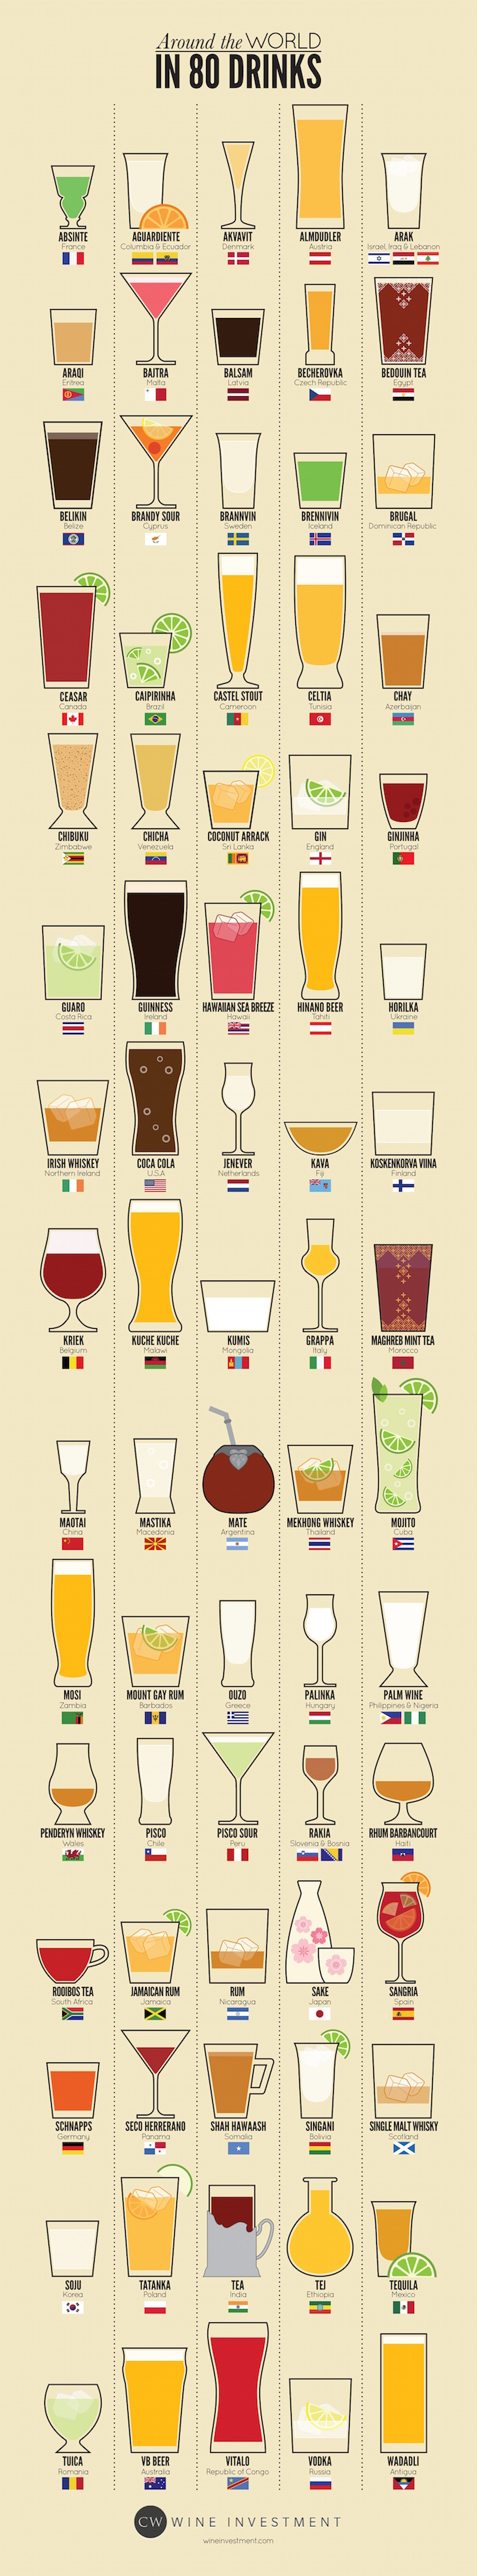 what people drink around the world